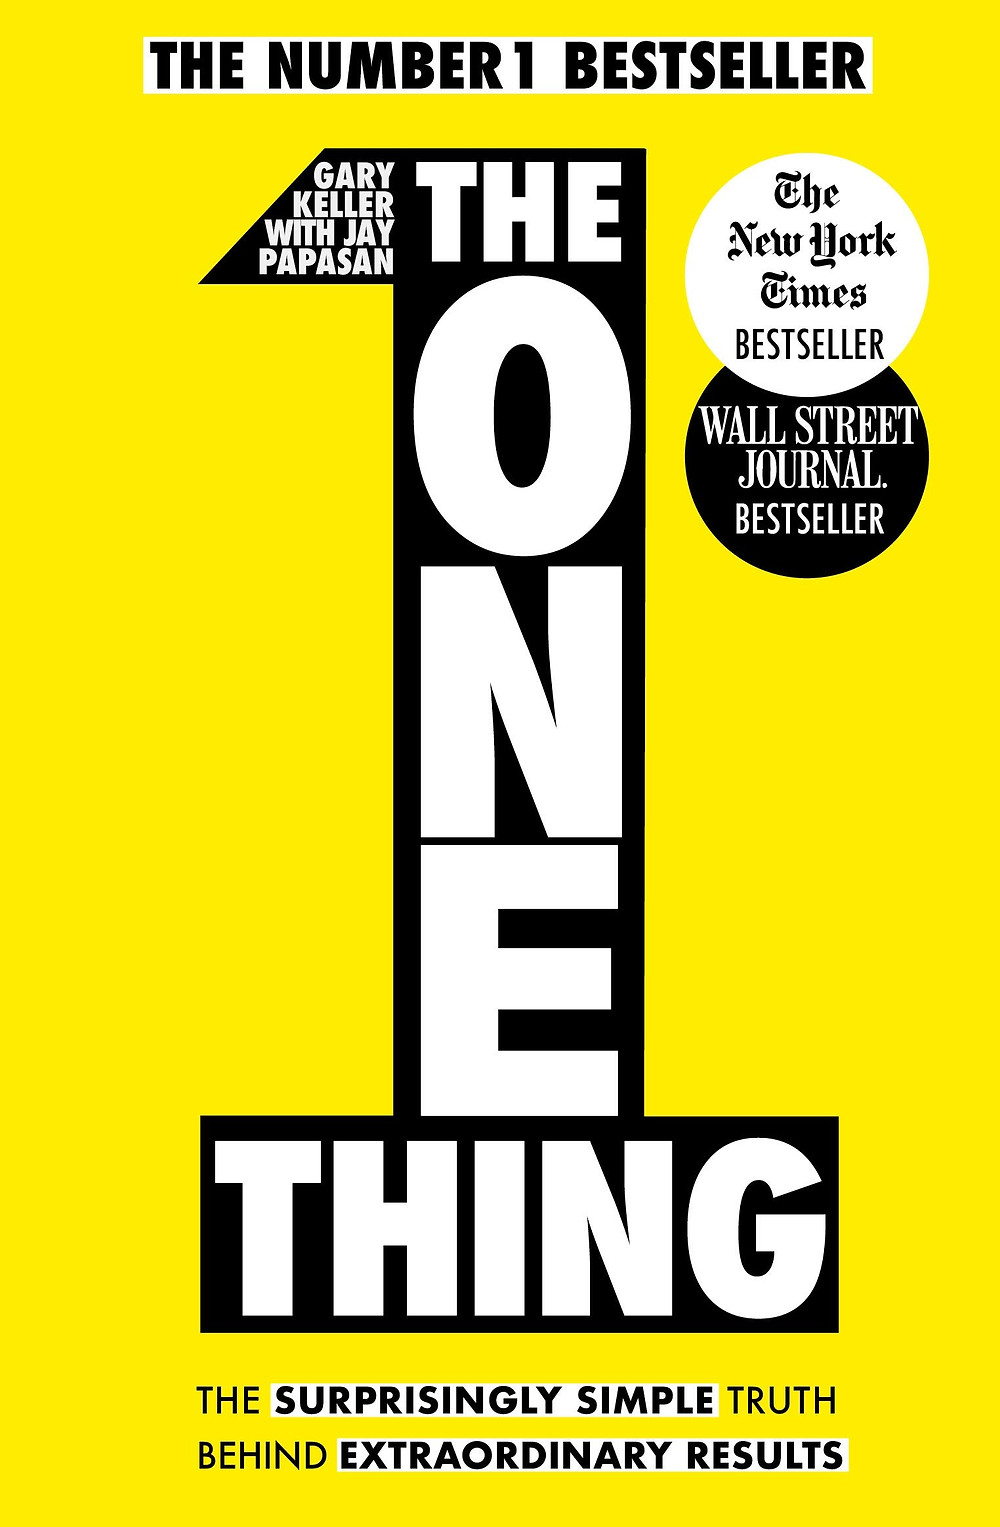 Yellow book cover with a number one shape, filled with text that says The One Thing, The Number 1 Bestseller - Gary Keller with Jay Papasan